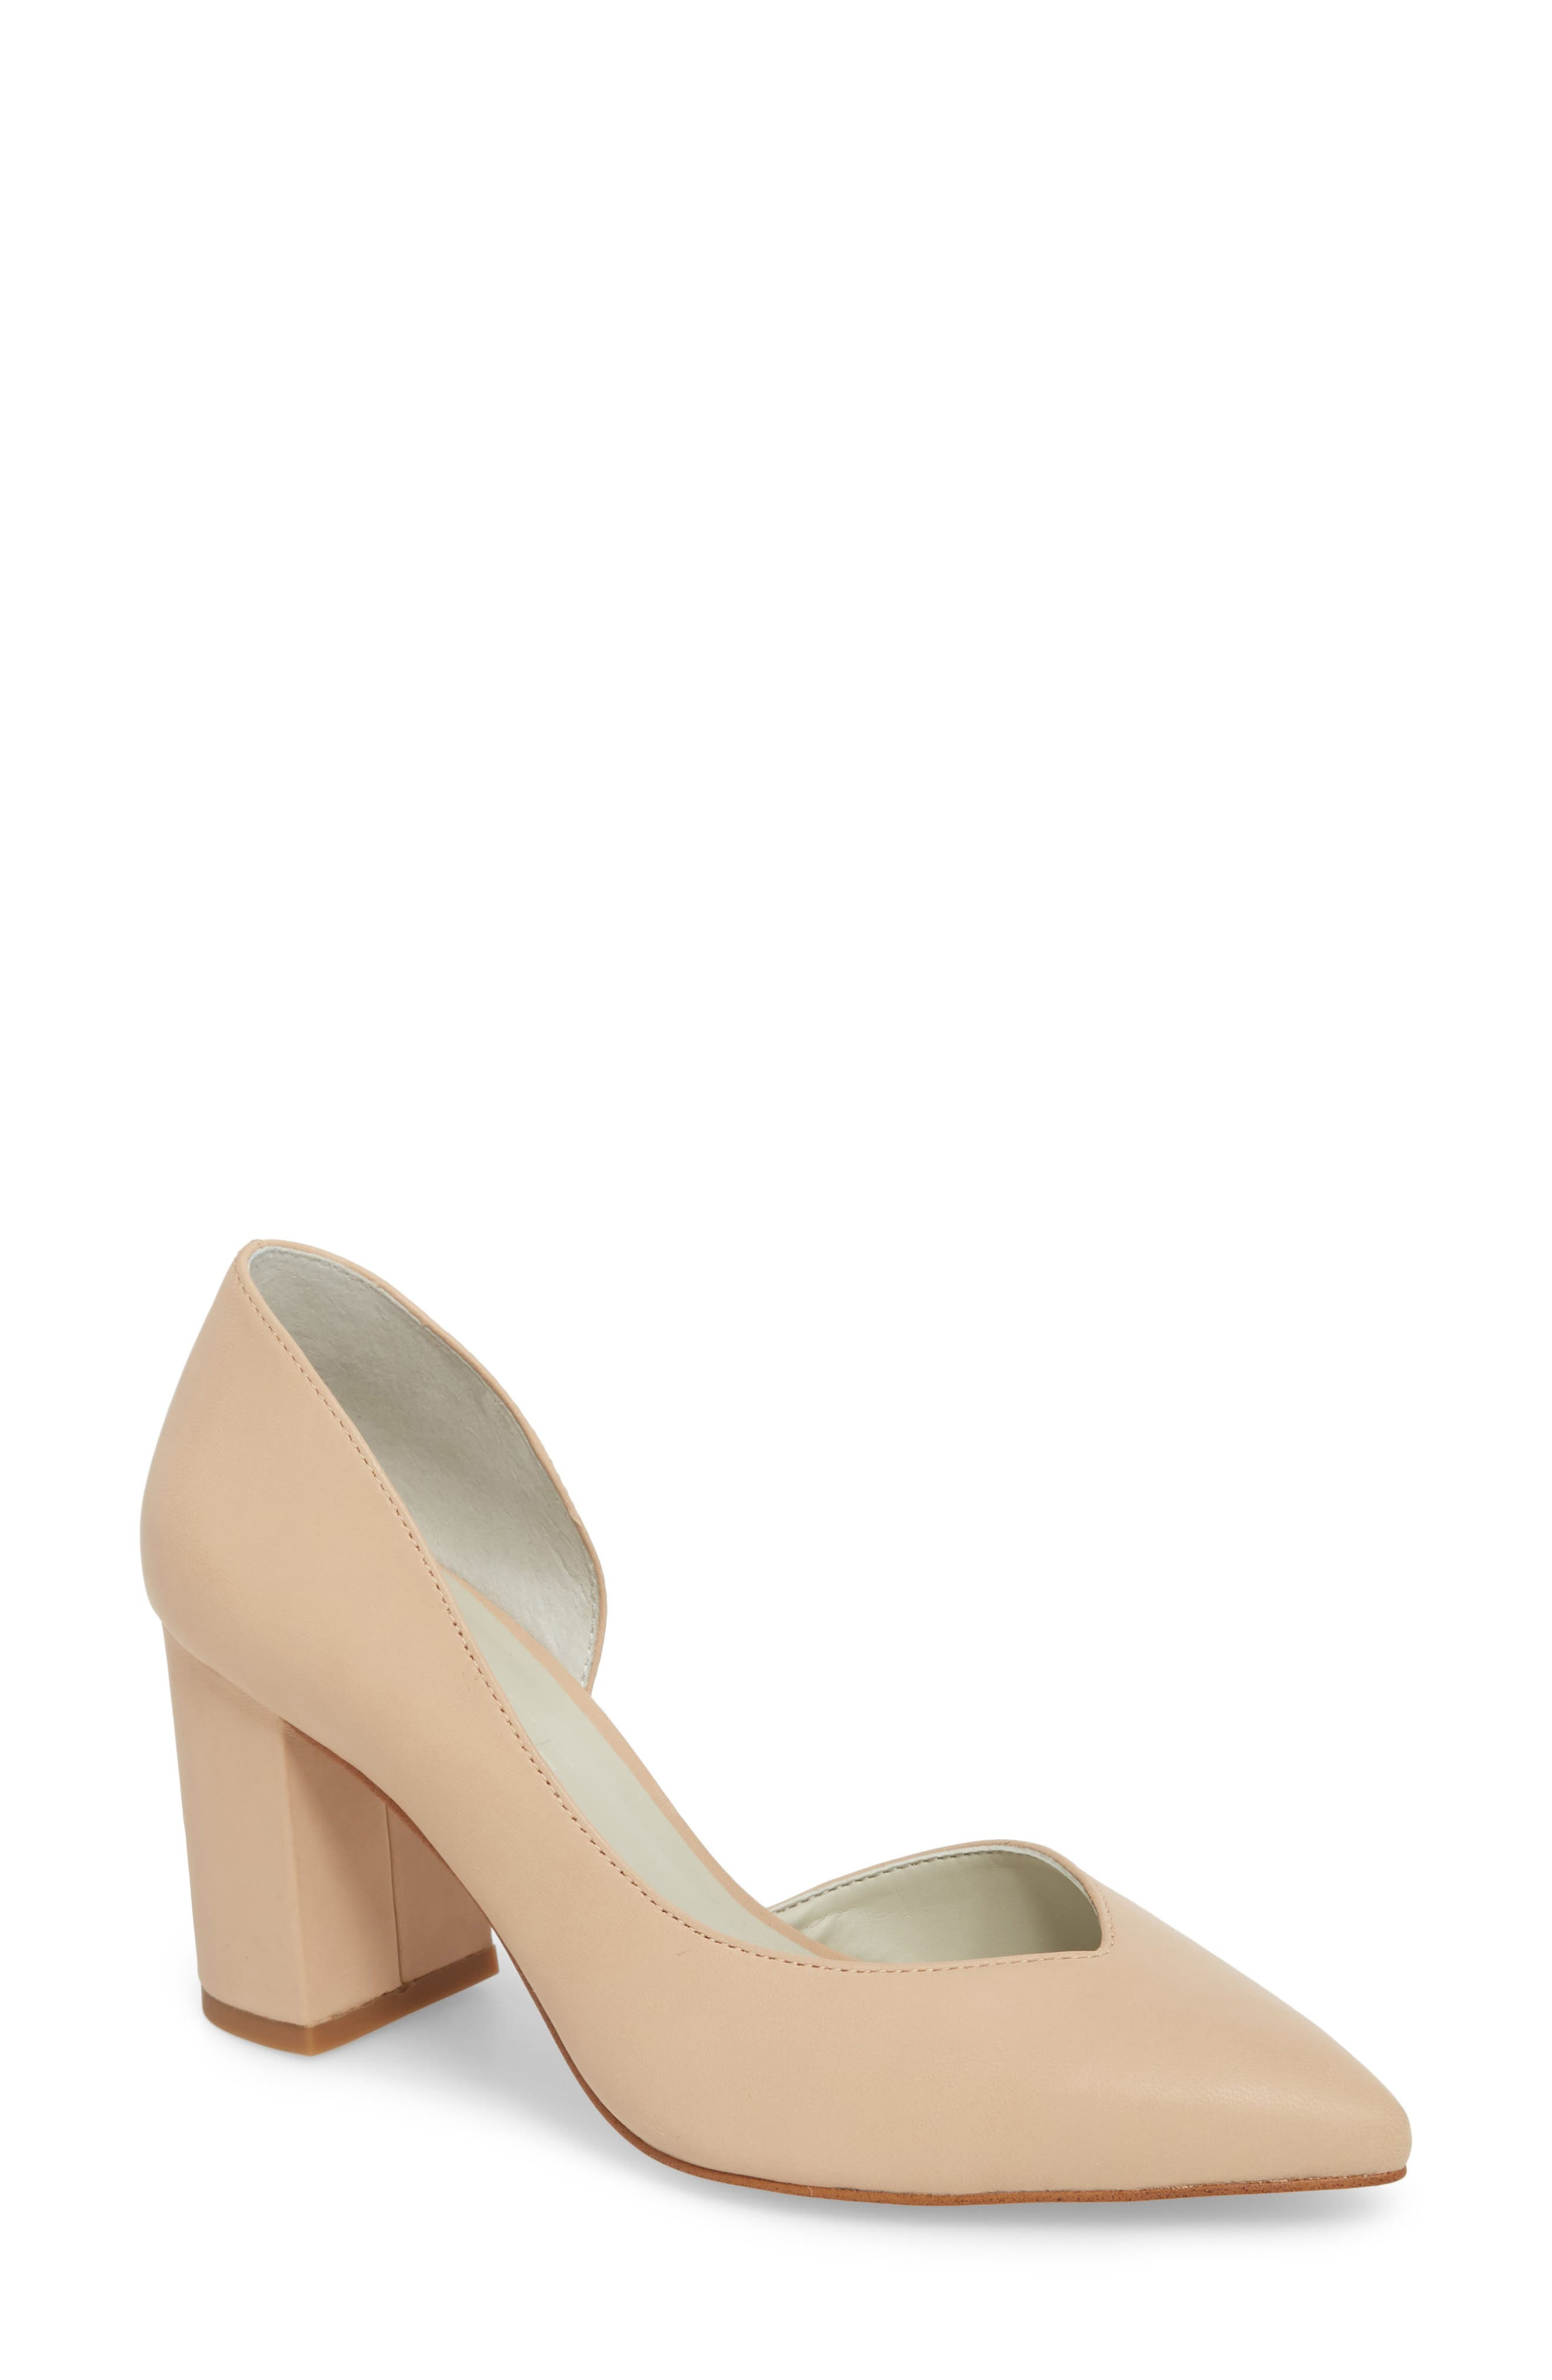 Almond patent 'Andersonn' mid block heel court shoes discount reliable discount get authentic cheap sale with mastercard how much cheap online new for sale KuxPGFG6mh